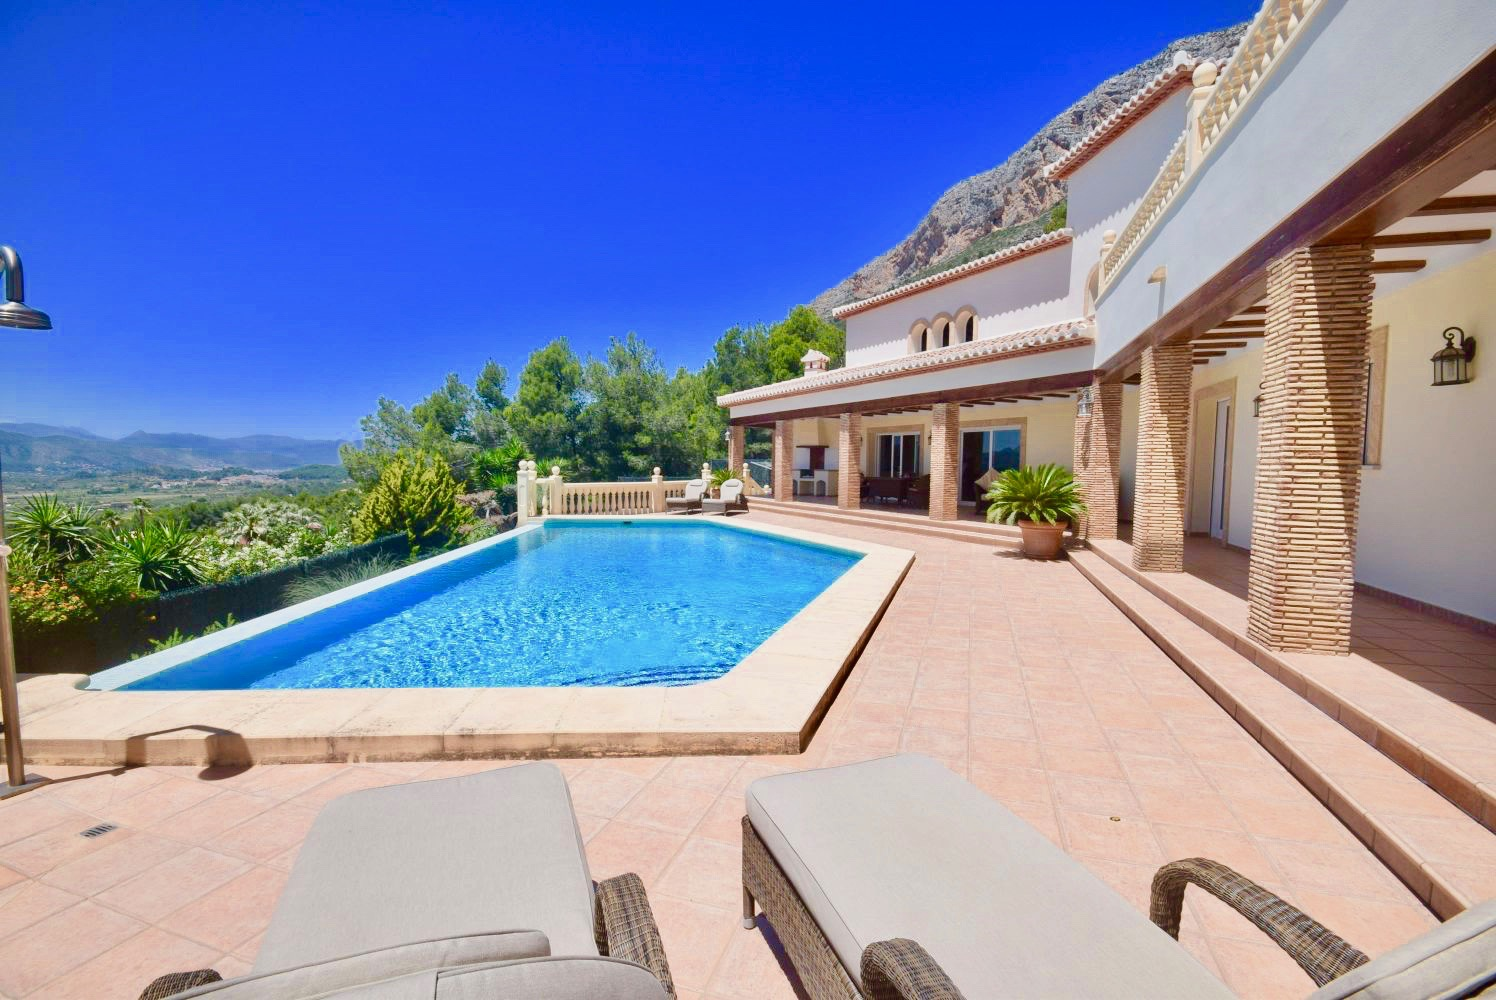 Housesfor sale in Javea